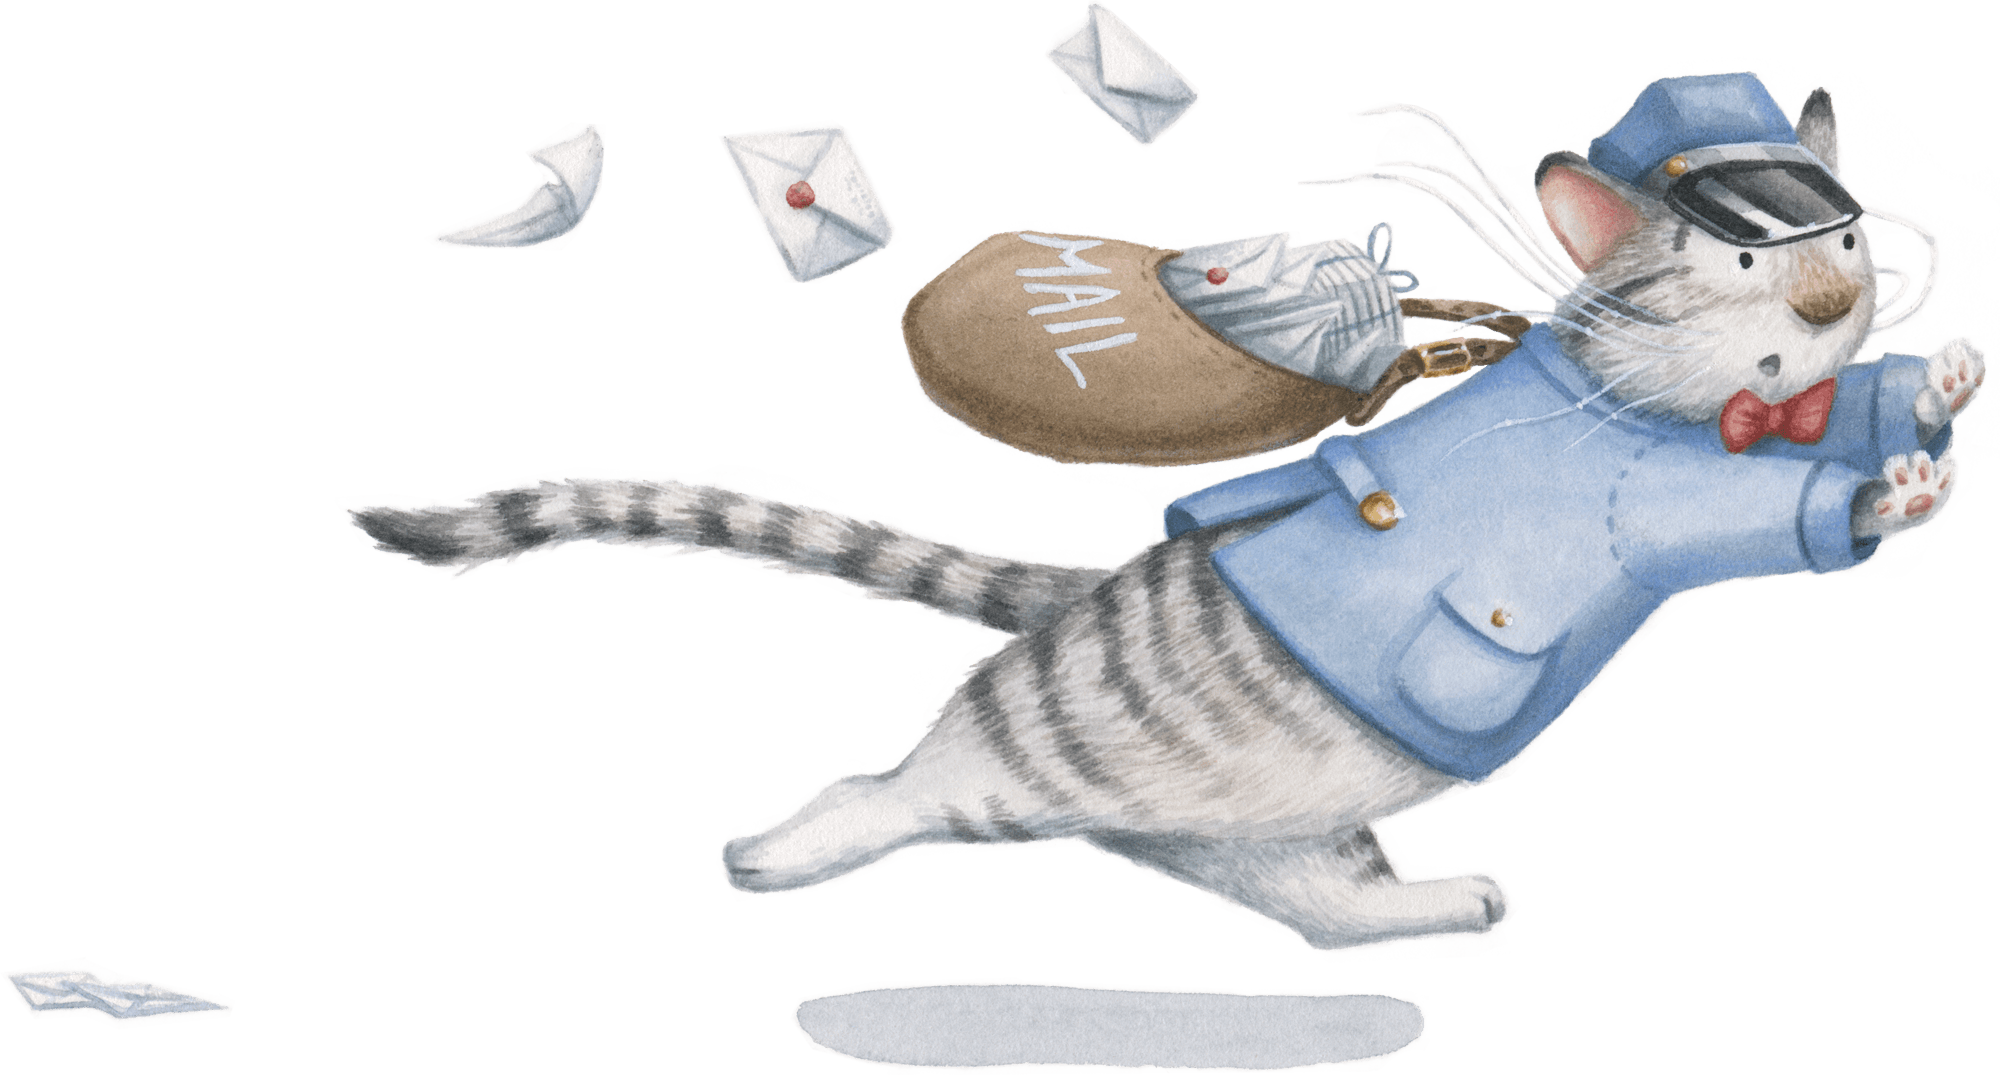 mail-cat-contact-me.png